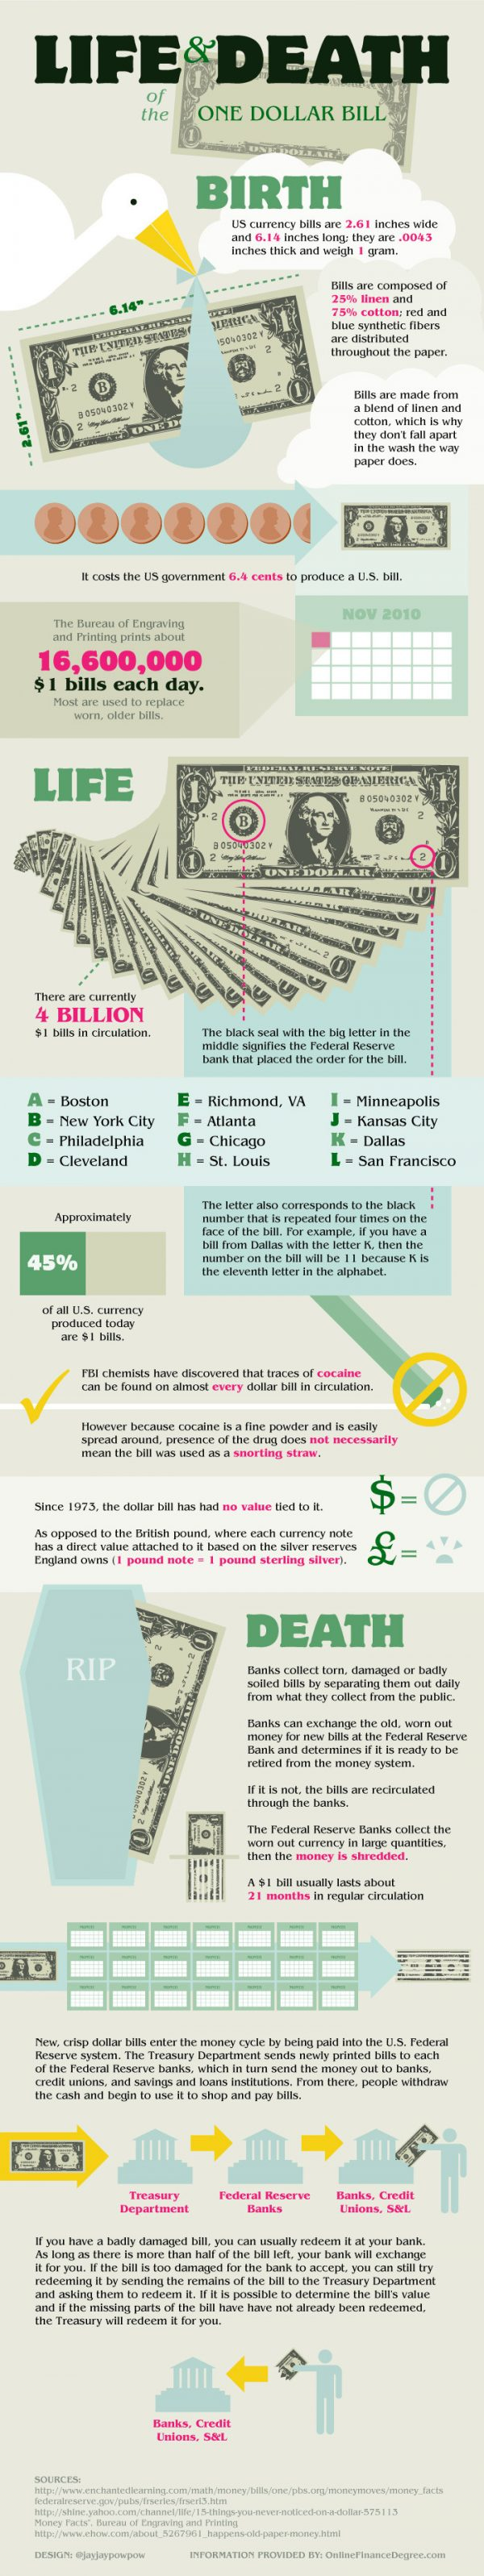 Life and Death of a One Dollar Bill (Infographic)